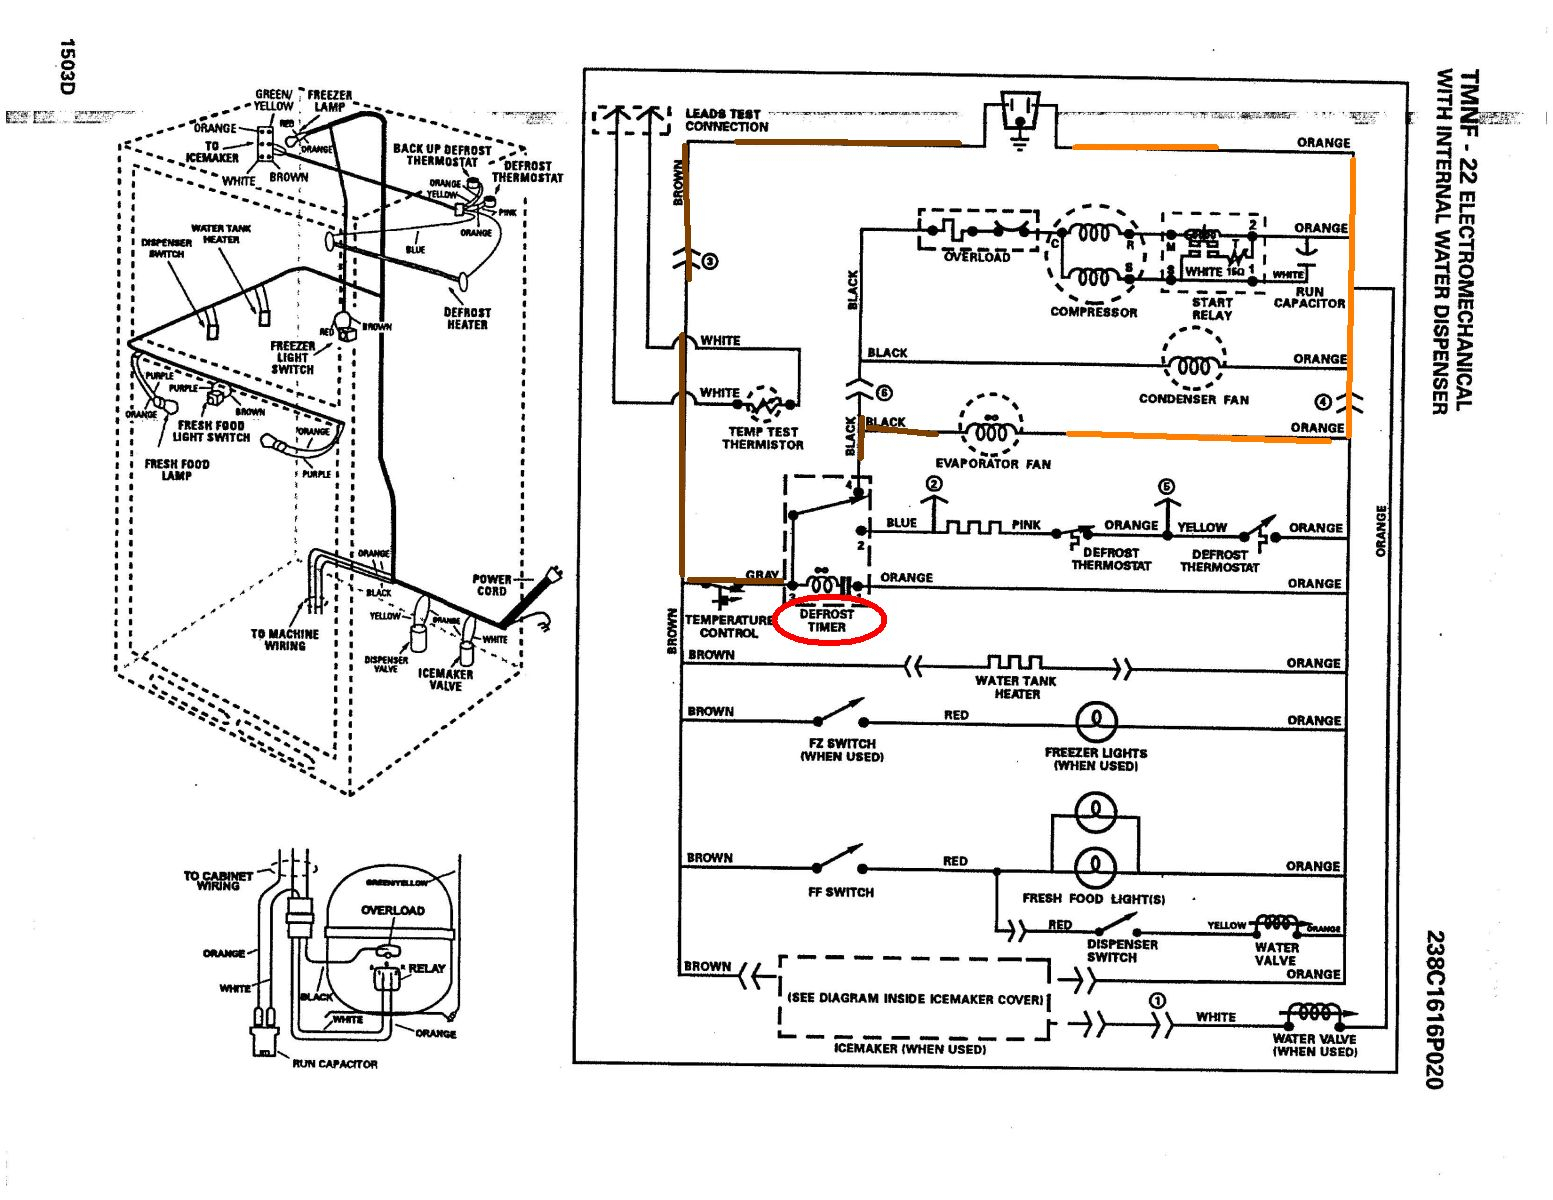 Ge Refrigerator Wiring Diagram Sample